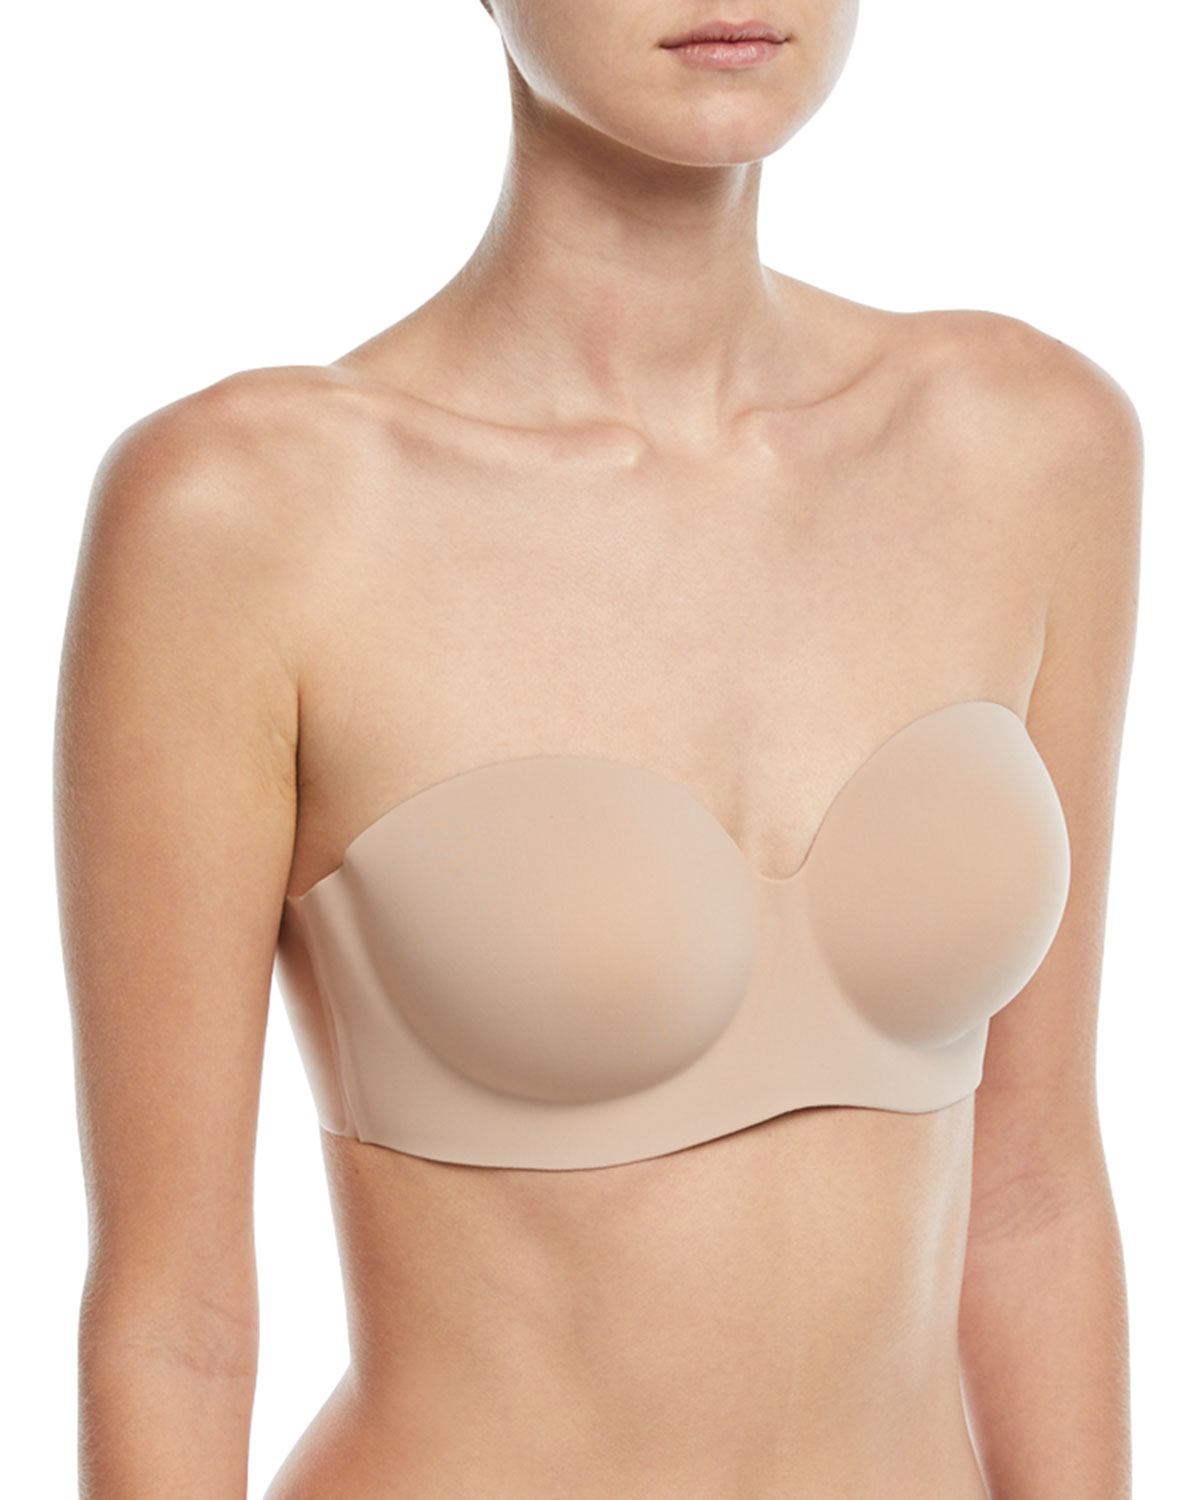 2477731c84 Fashion Forms Voluptuous Backless Strapless Bra